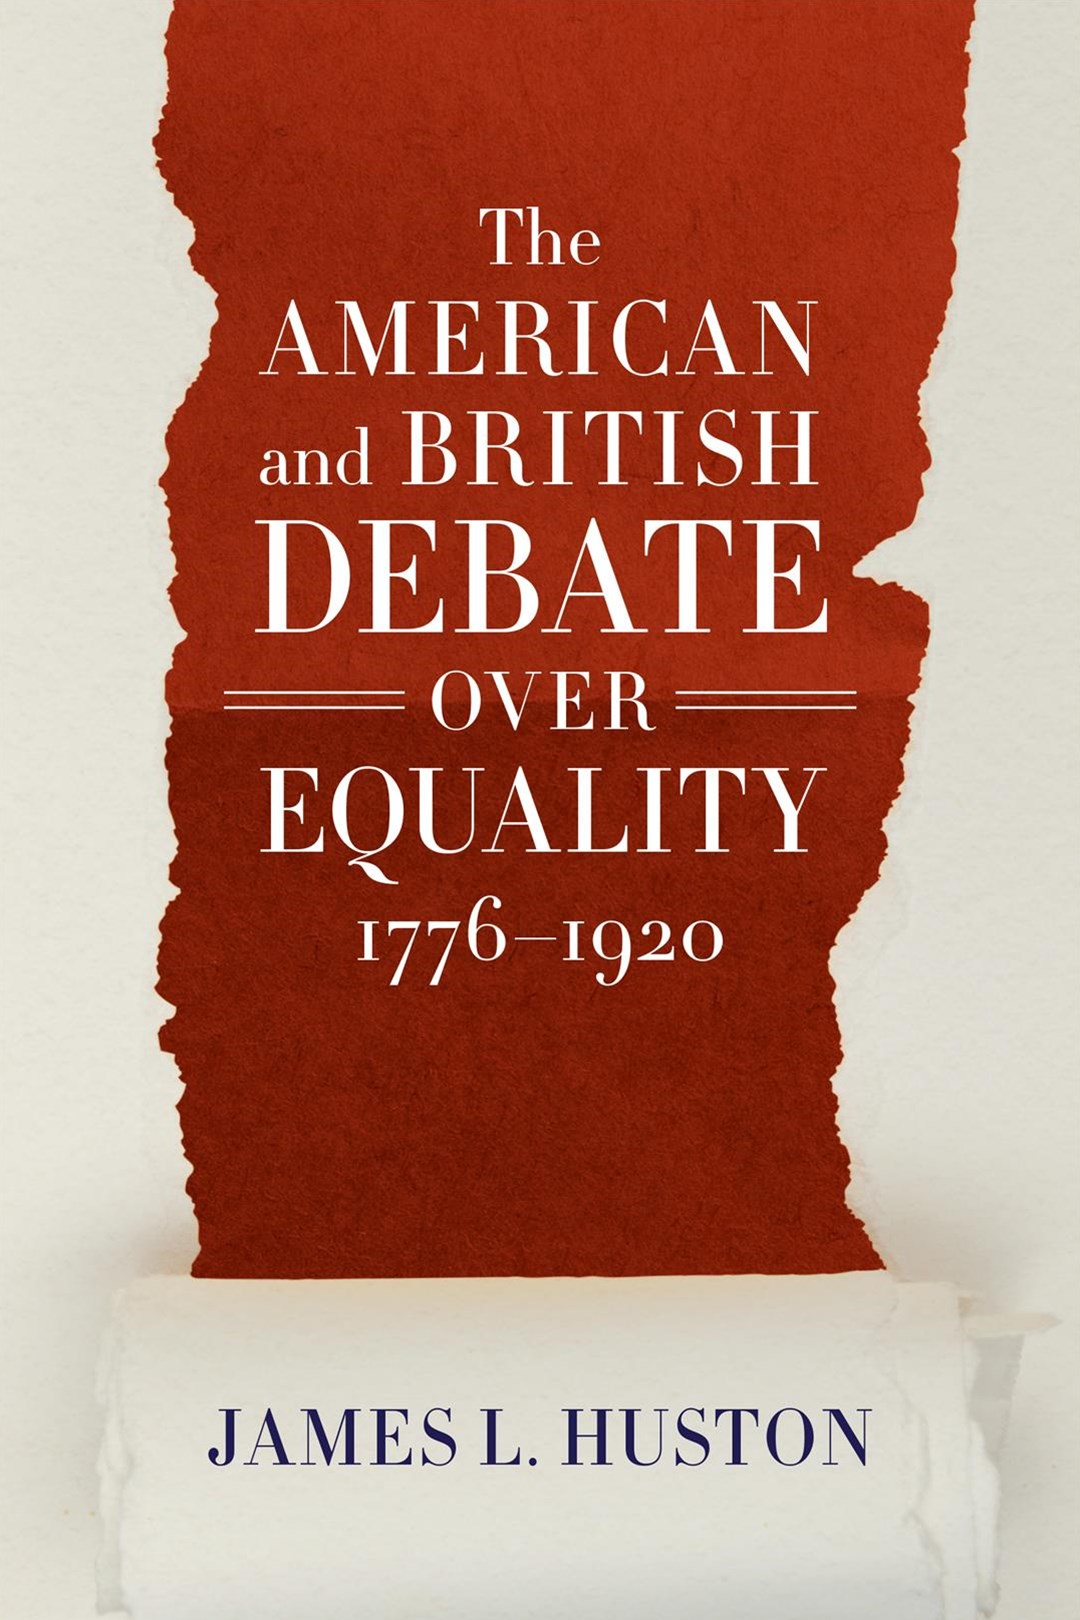 The American and British Debate over Equality 1776-1920